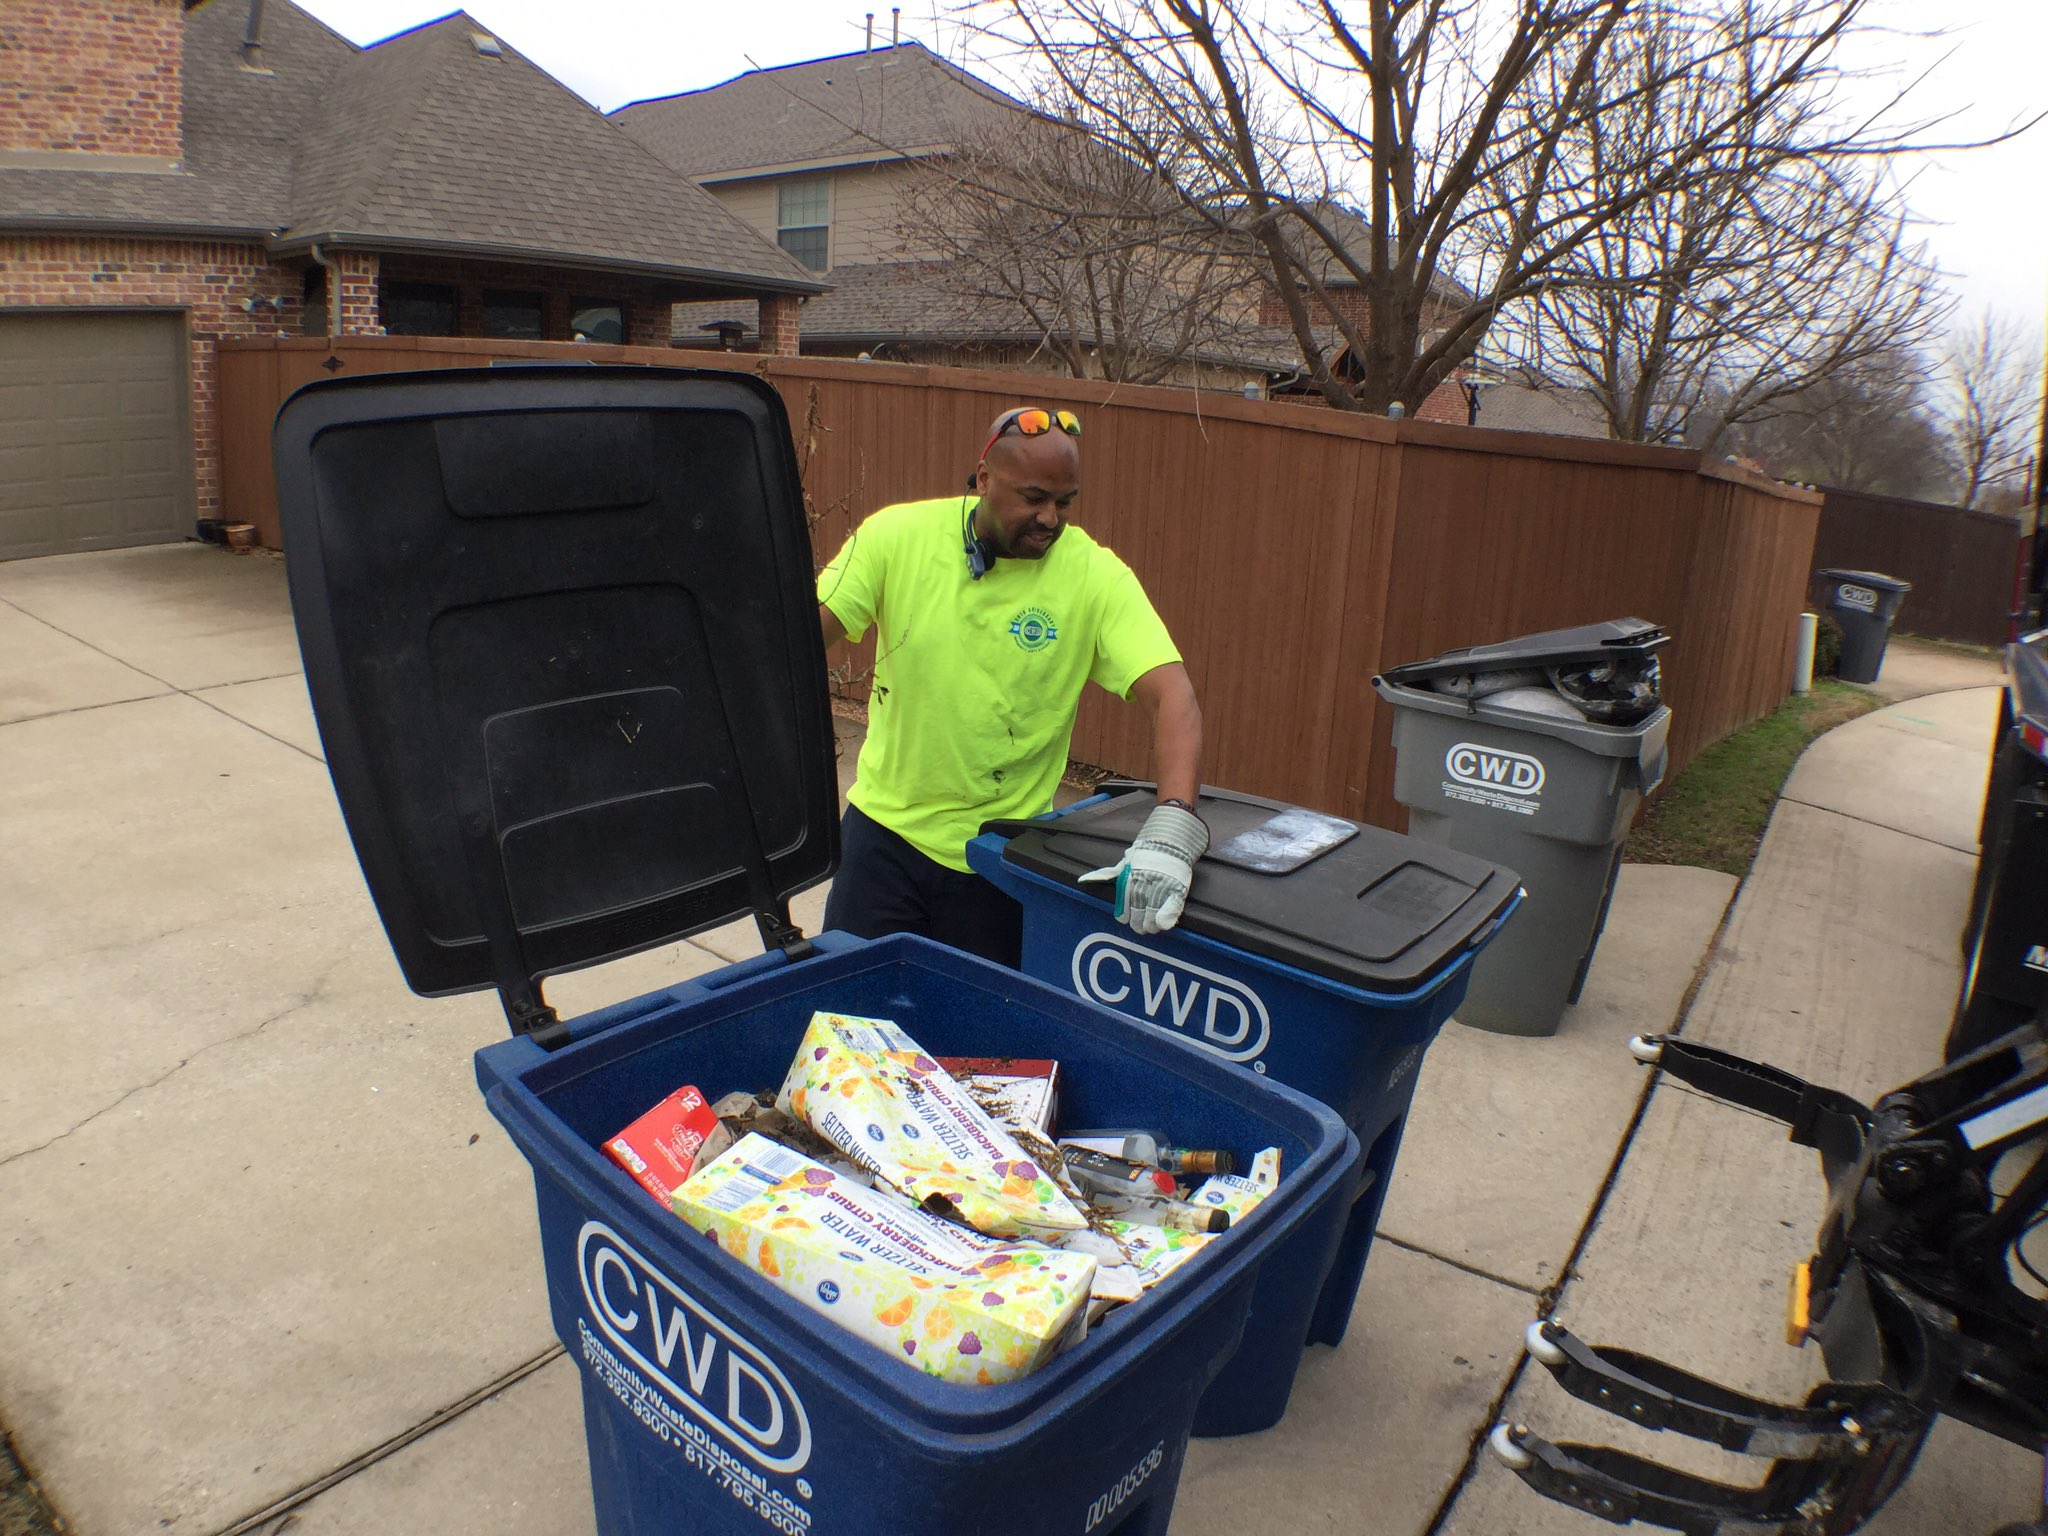 Drivers try to help if time allows. Christopher moved two bags of trash off the recycle bins instead of skipping pickup. #AllenHashtagAlong https://t.co/M0azzIgZK4